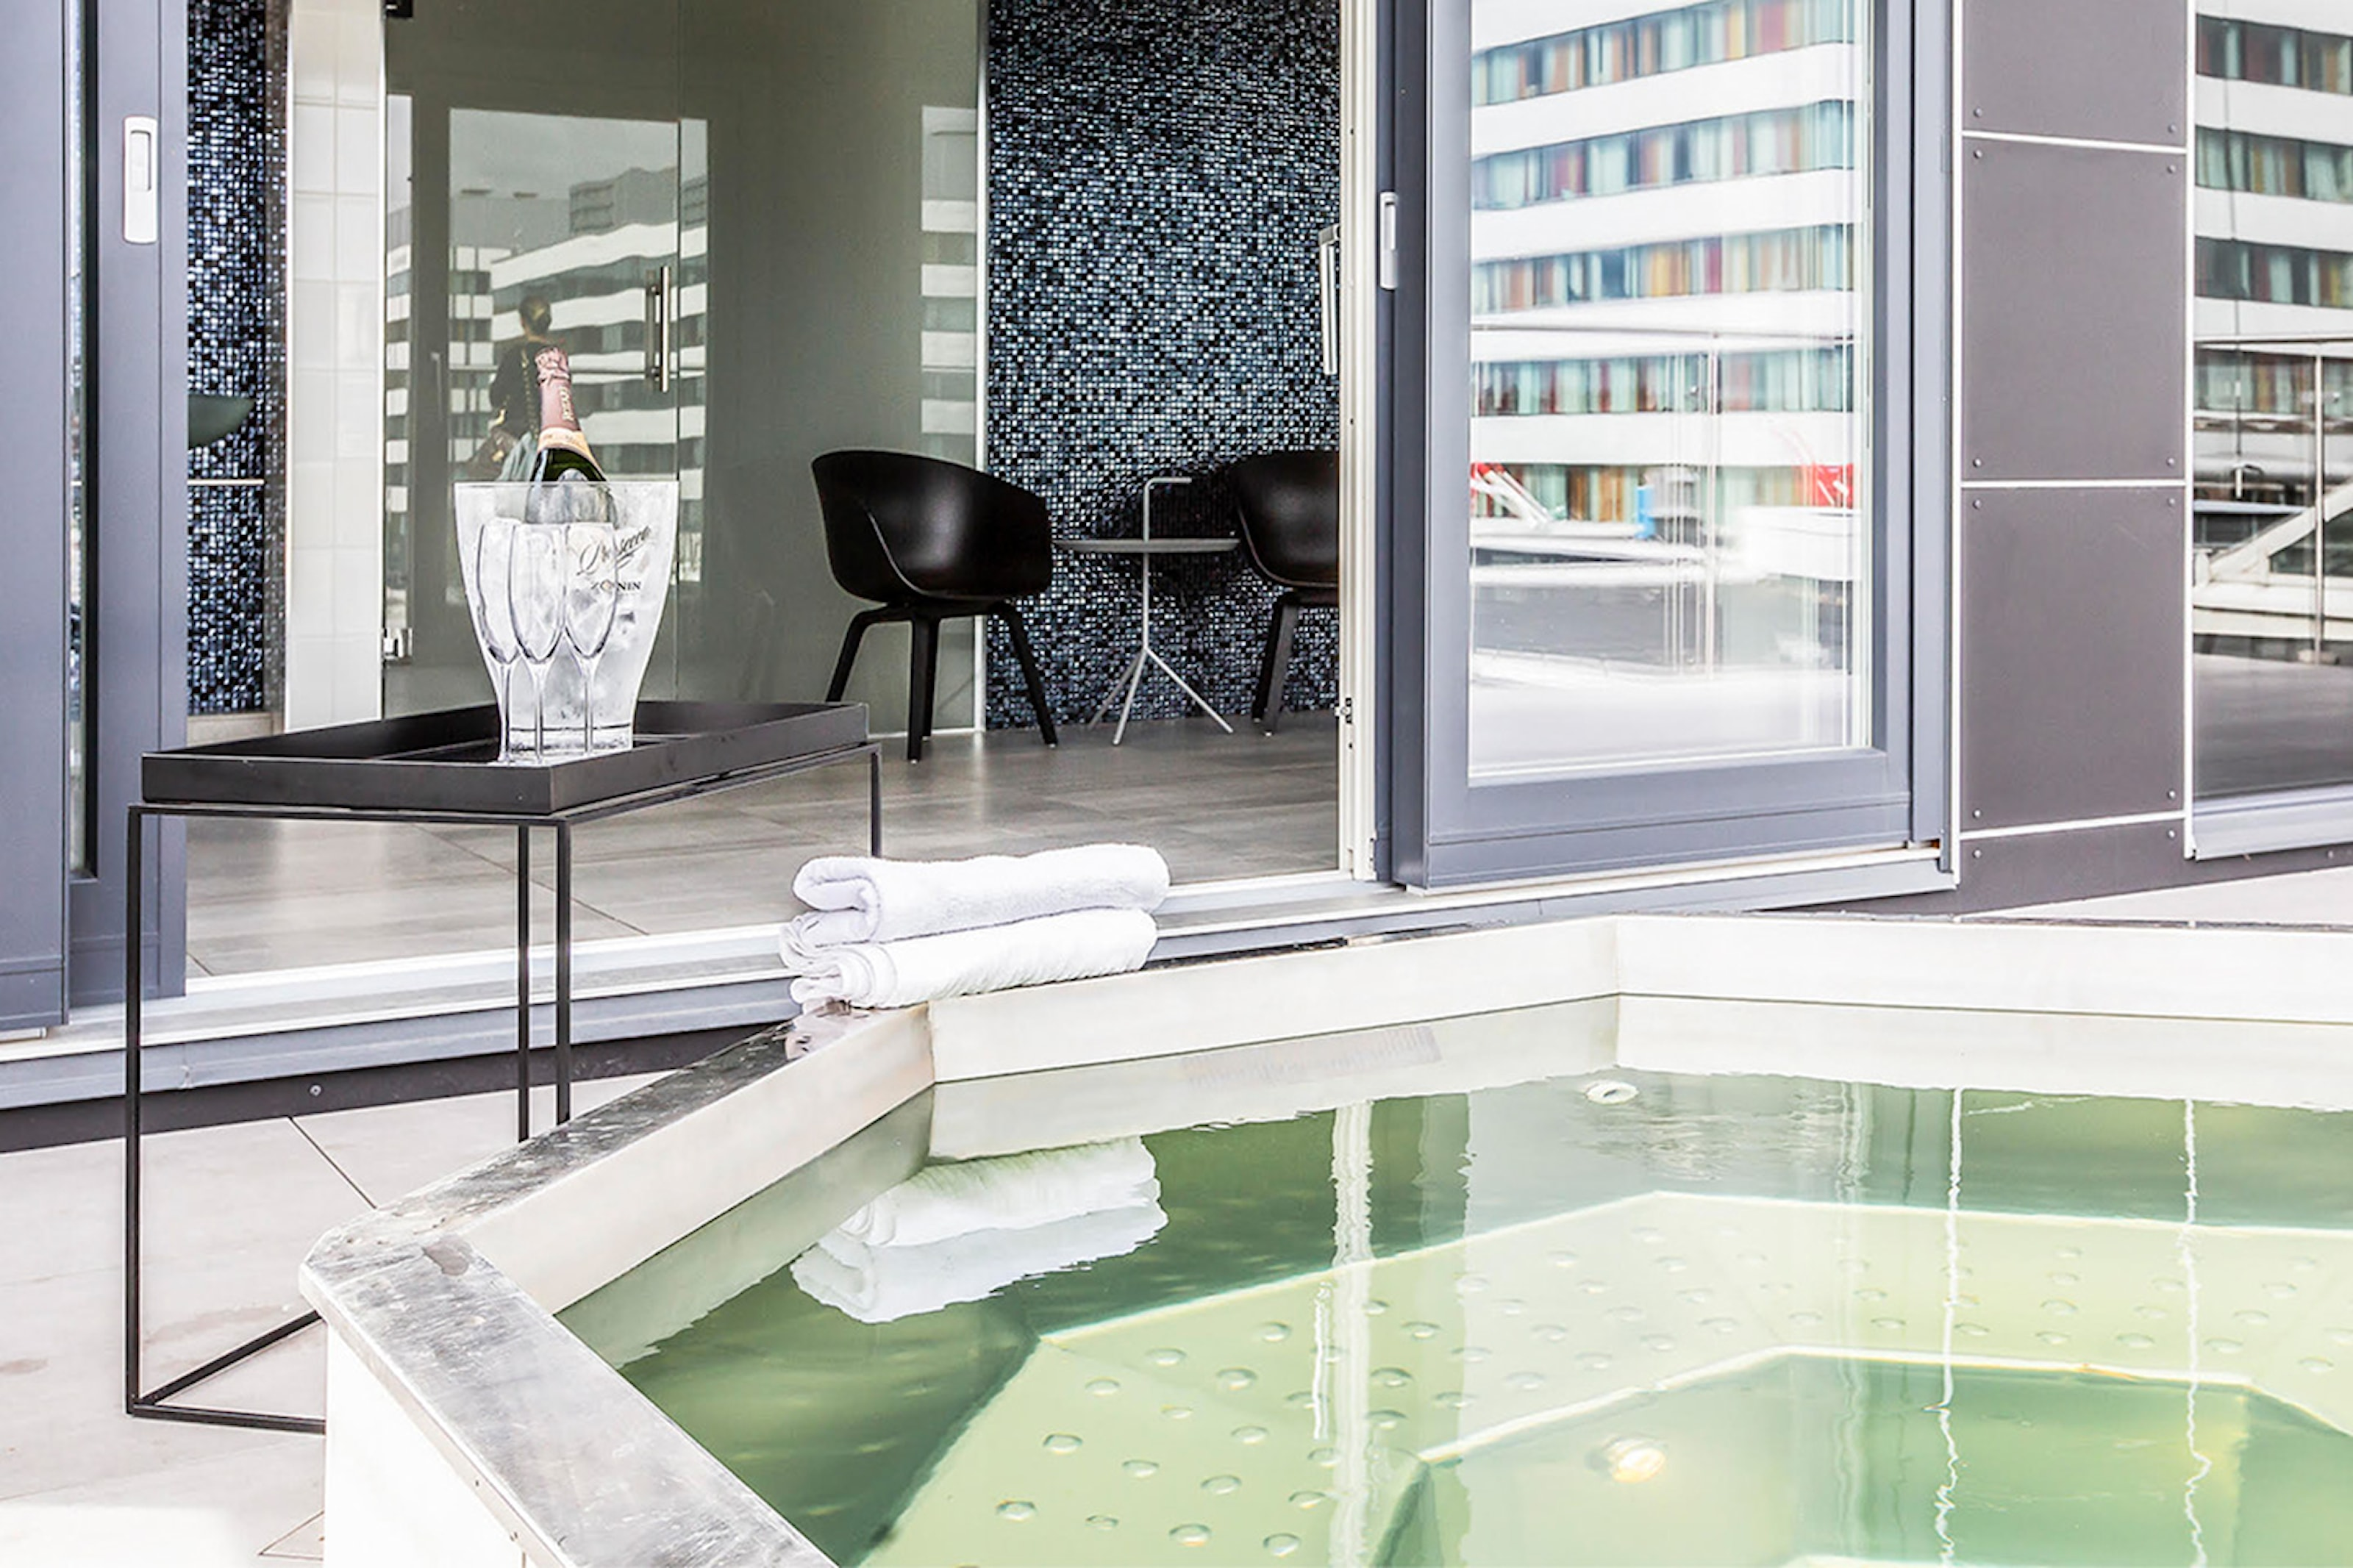 Stockholm: Getaway for to personer